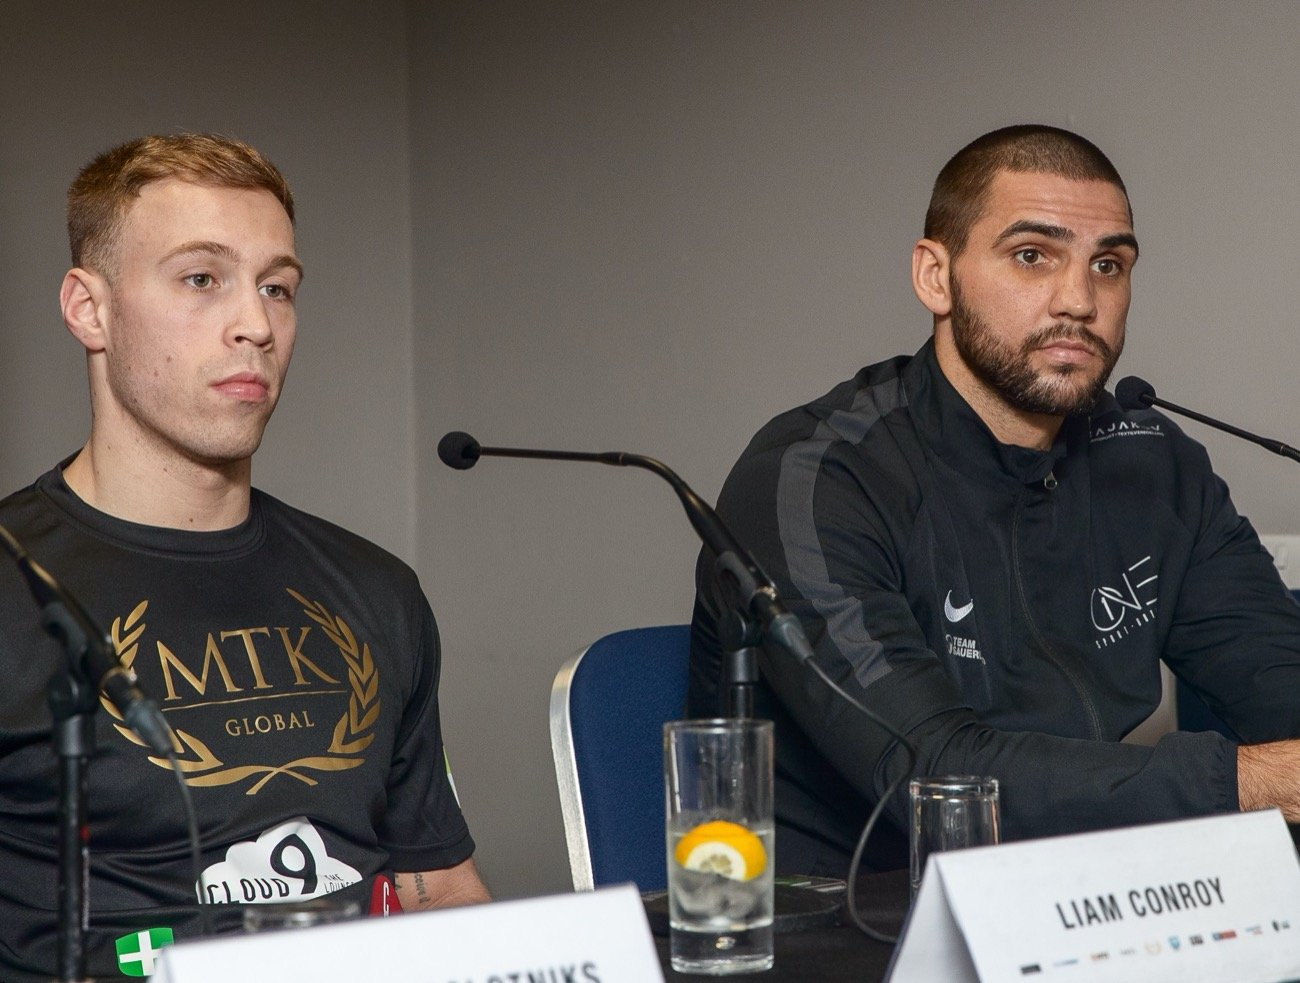 Liam Conroy, Serge Michel - Conroy: Getting picked has lit a fire in me - Liam Conroy has warned Serge Michel that he's made a big mistake by picking him ahead of their #GoldenContract light-heavyweight semi-final.